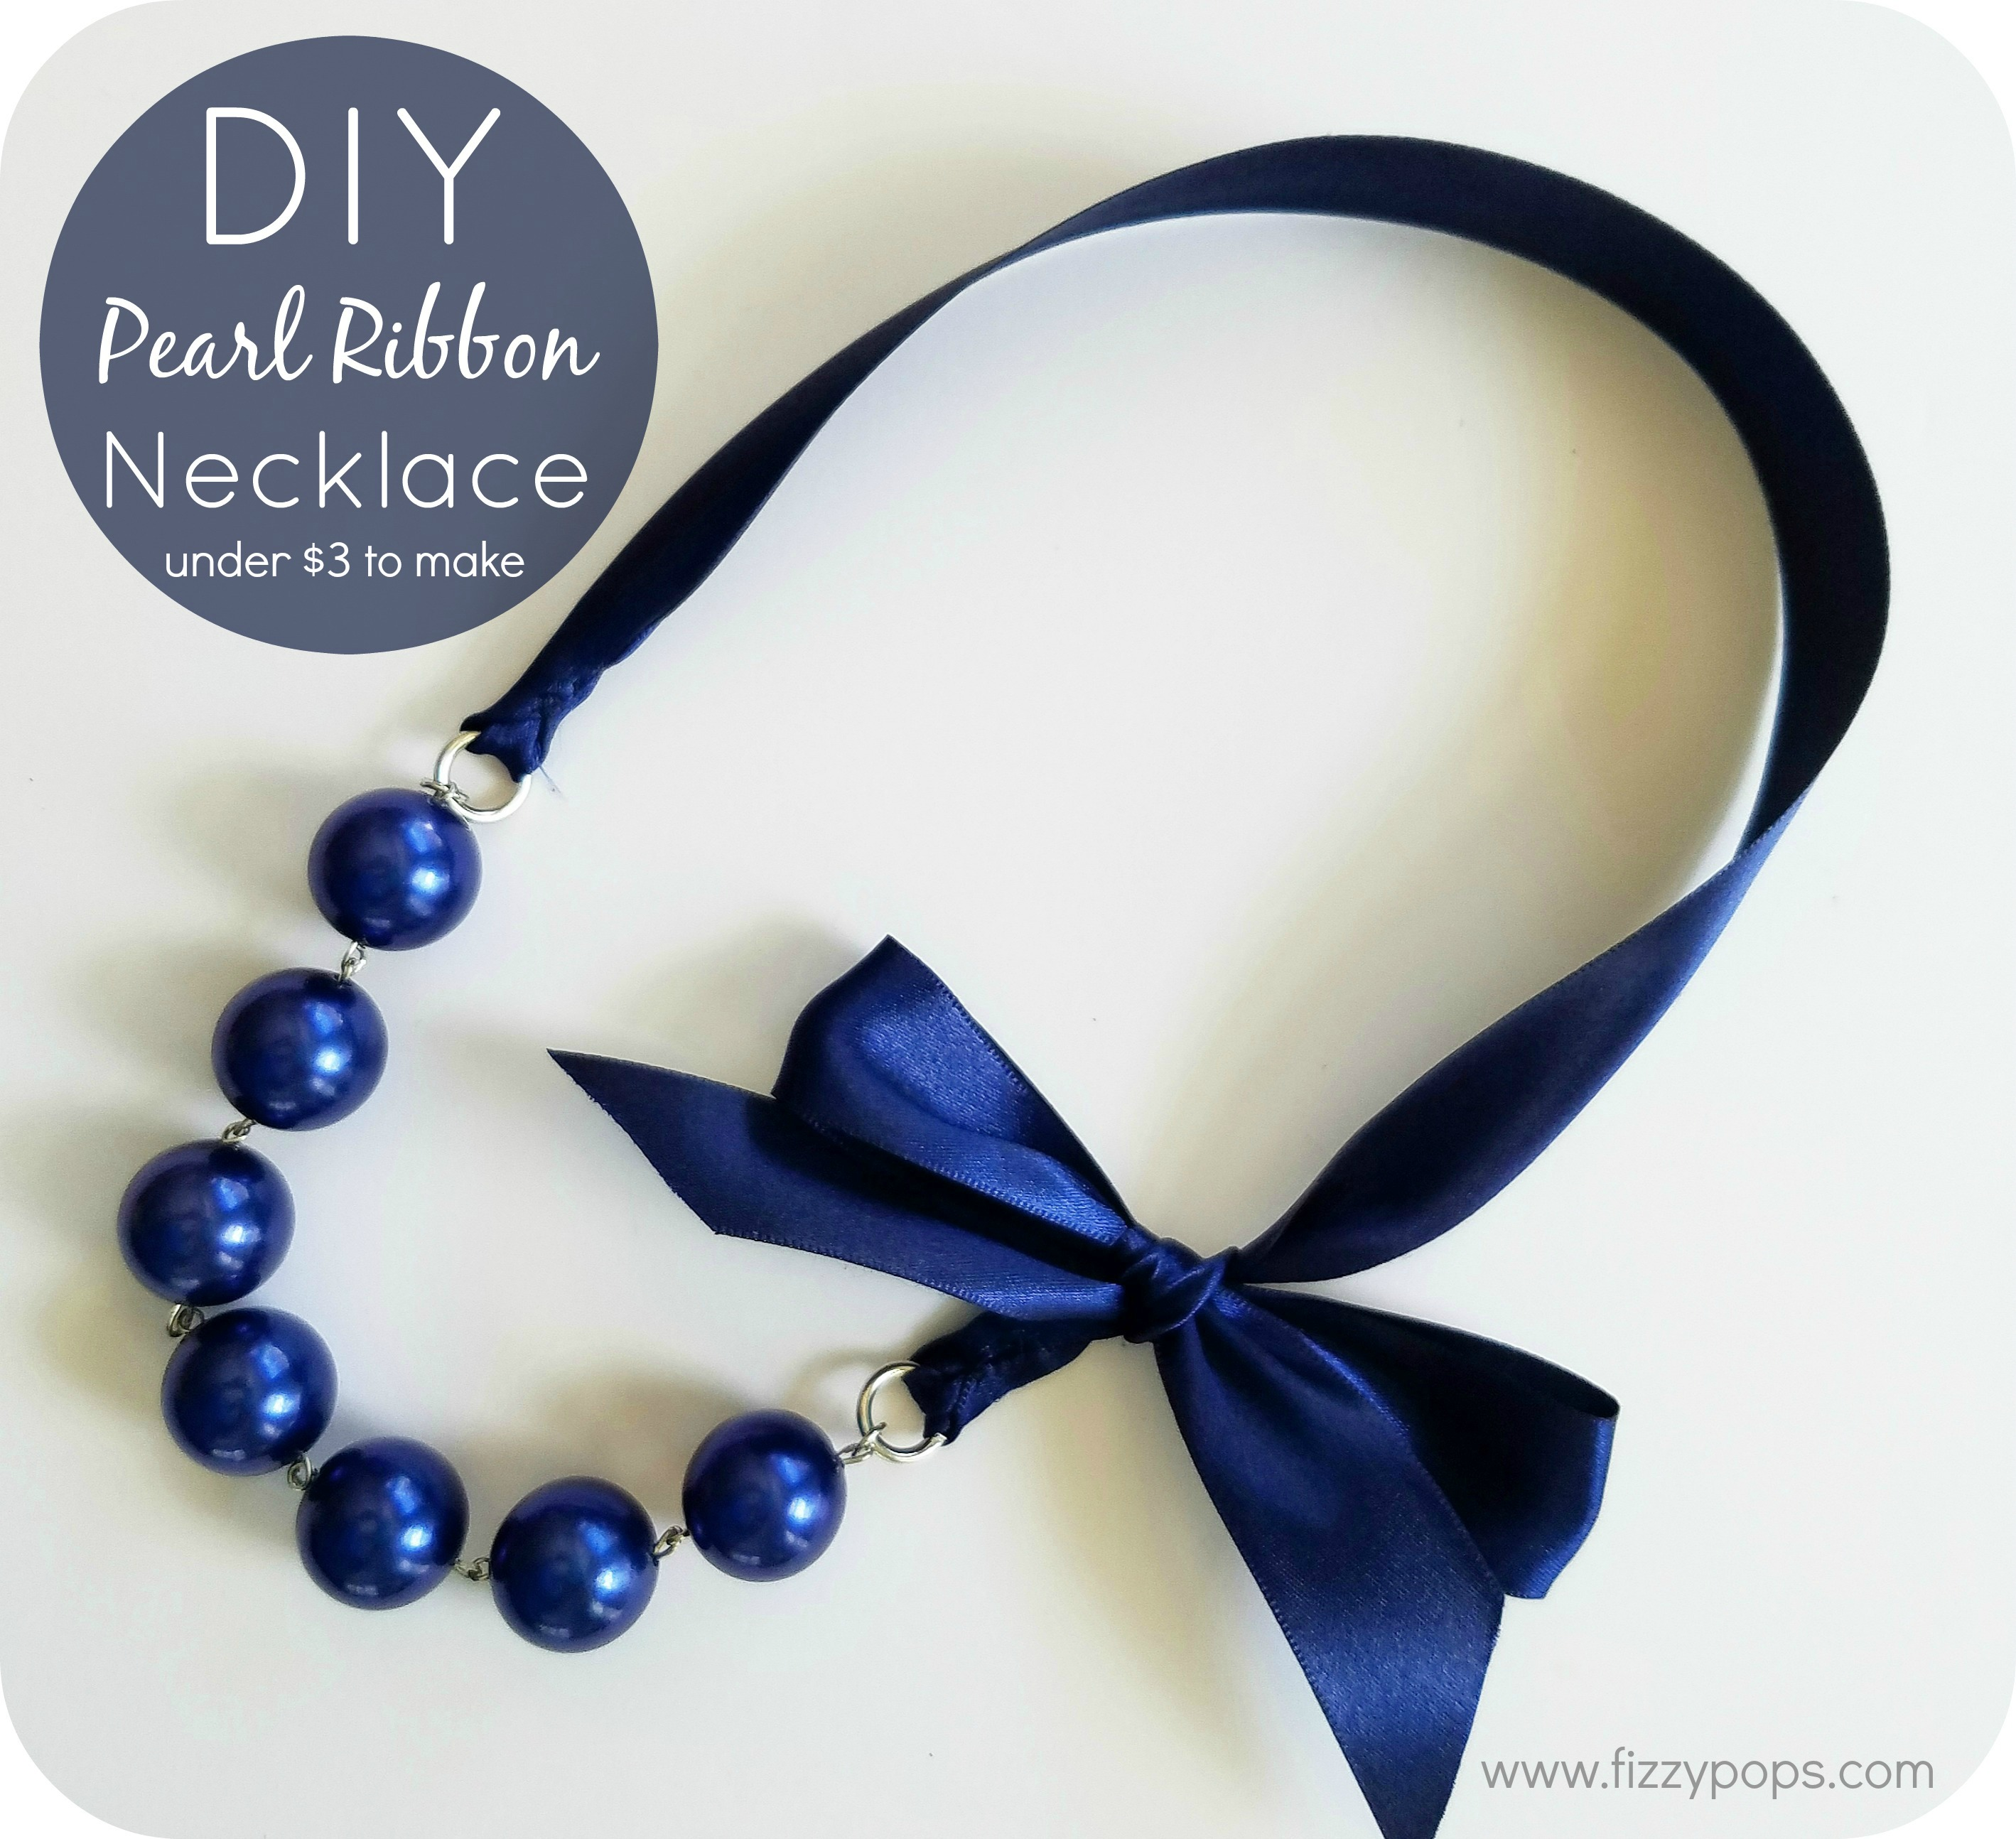 Diy Pearl Ribbon Necklace Tutorials 2 Styles Fizzy Pops